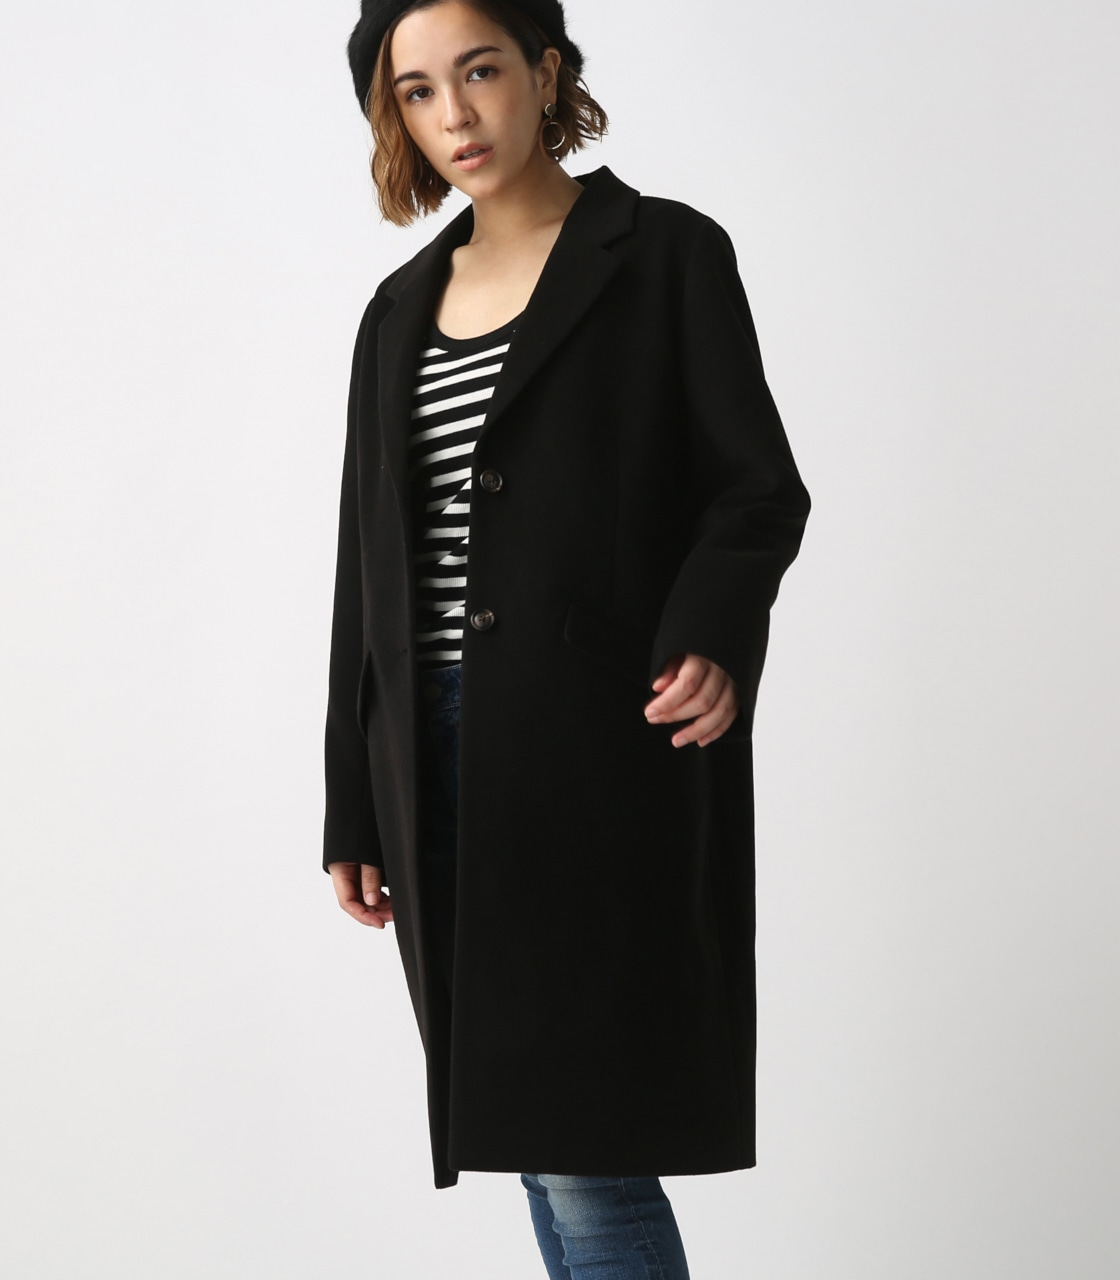 【AZUL BY MOUSSY】スタンダードチェスターコート 詳細画像 BLK 2